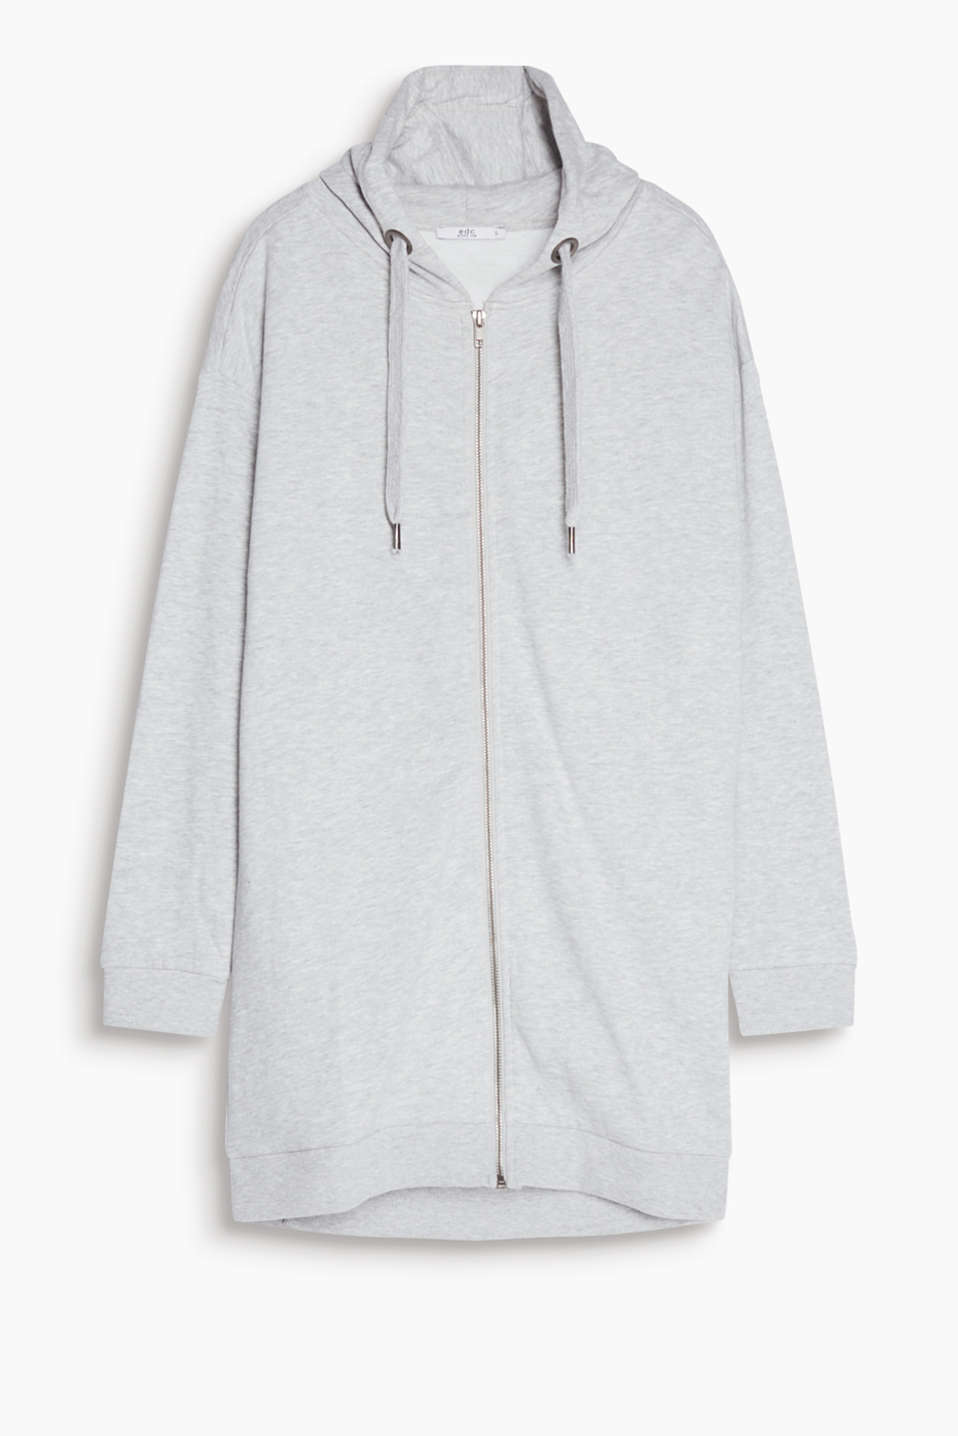 Sporty feel-good piece for relaxed everyday looks: long hooded sweatshirt jacket in blended cotton